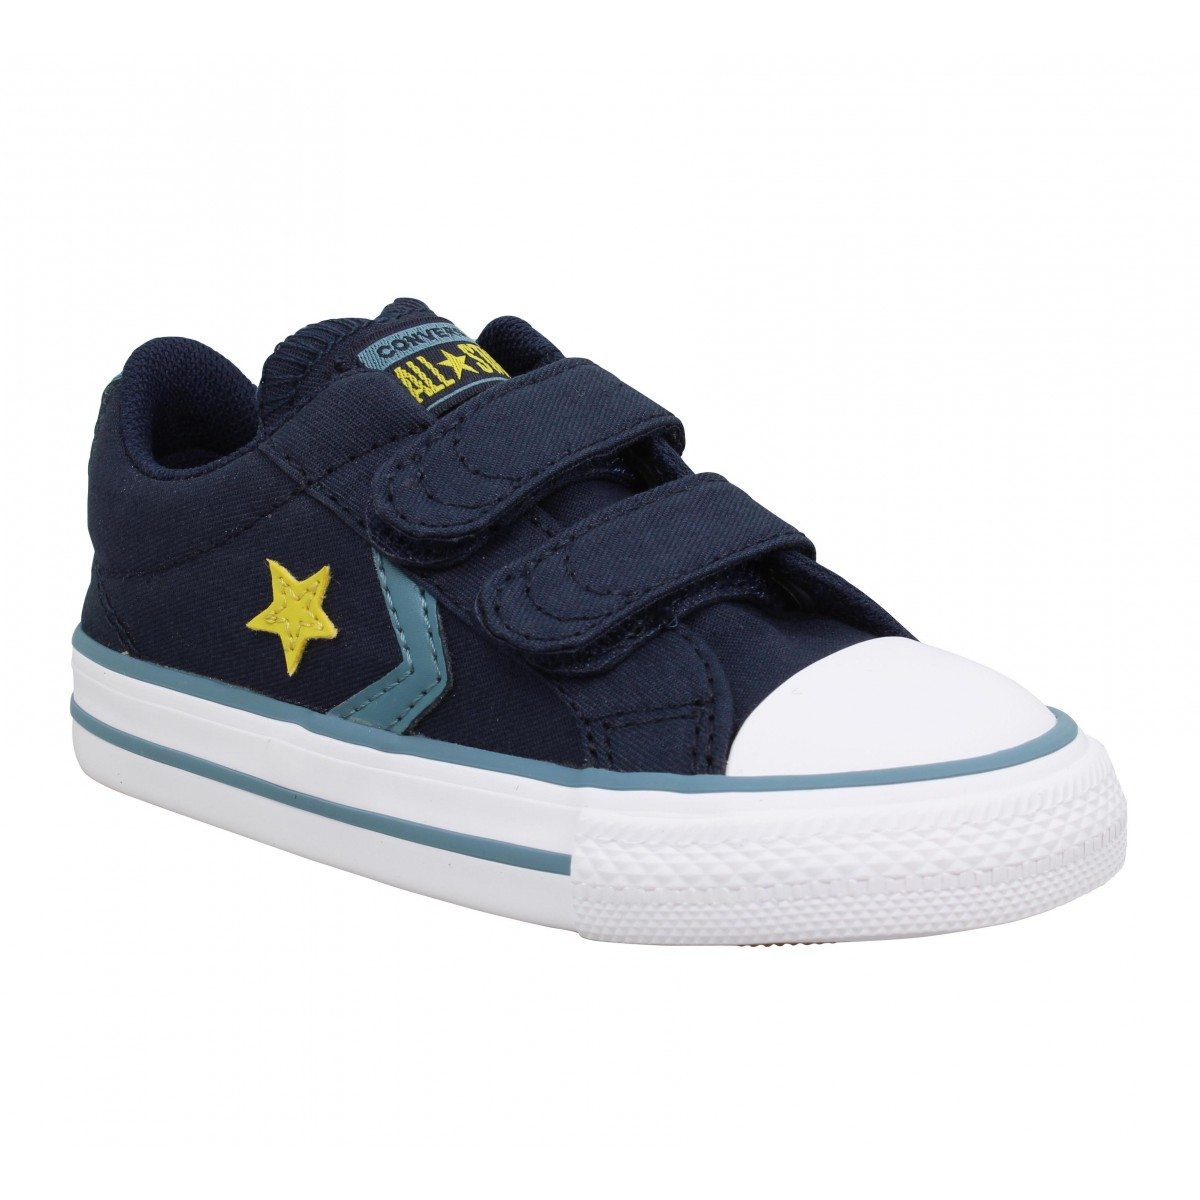 Baskets CONVERSE Star Player 2V OX toile Enfant Celeste